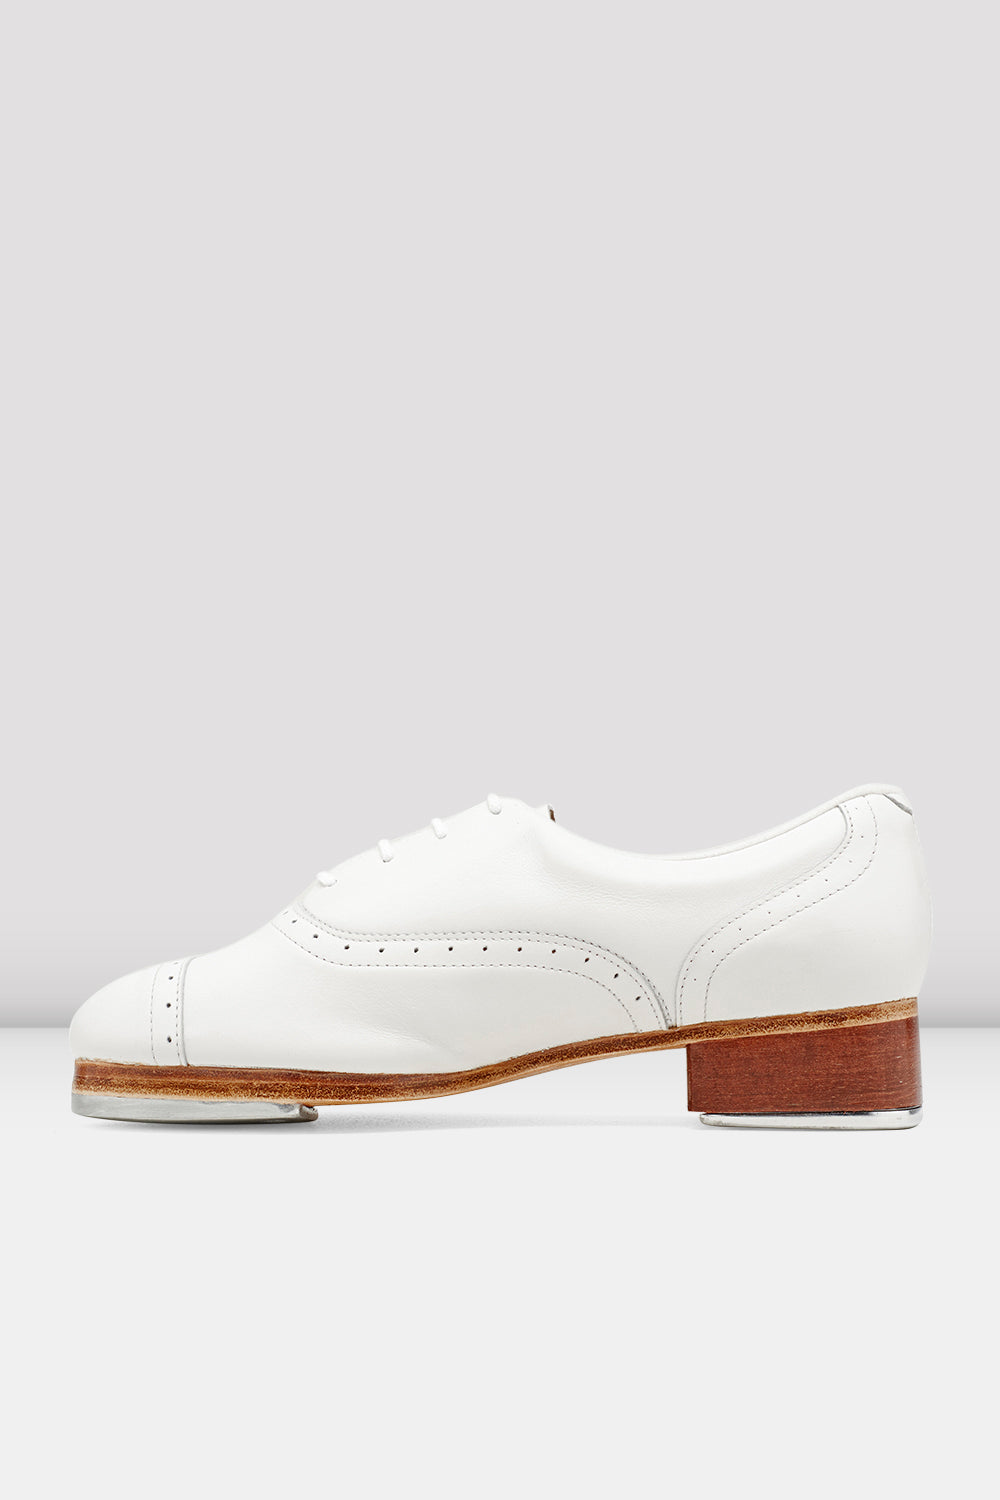 White leather Bloch Ladies Jason Samuels Smith Tap Shoes single shoe side view